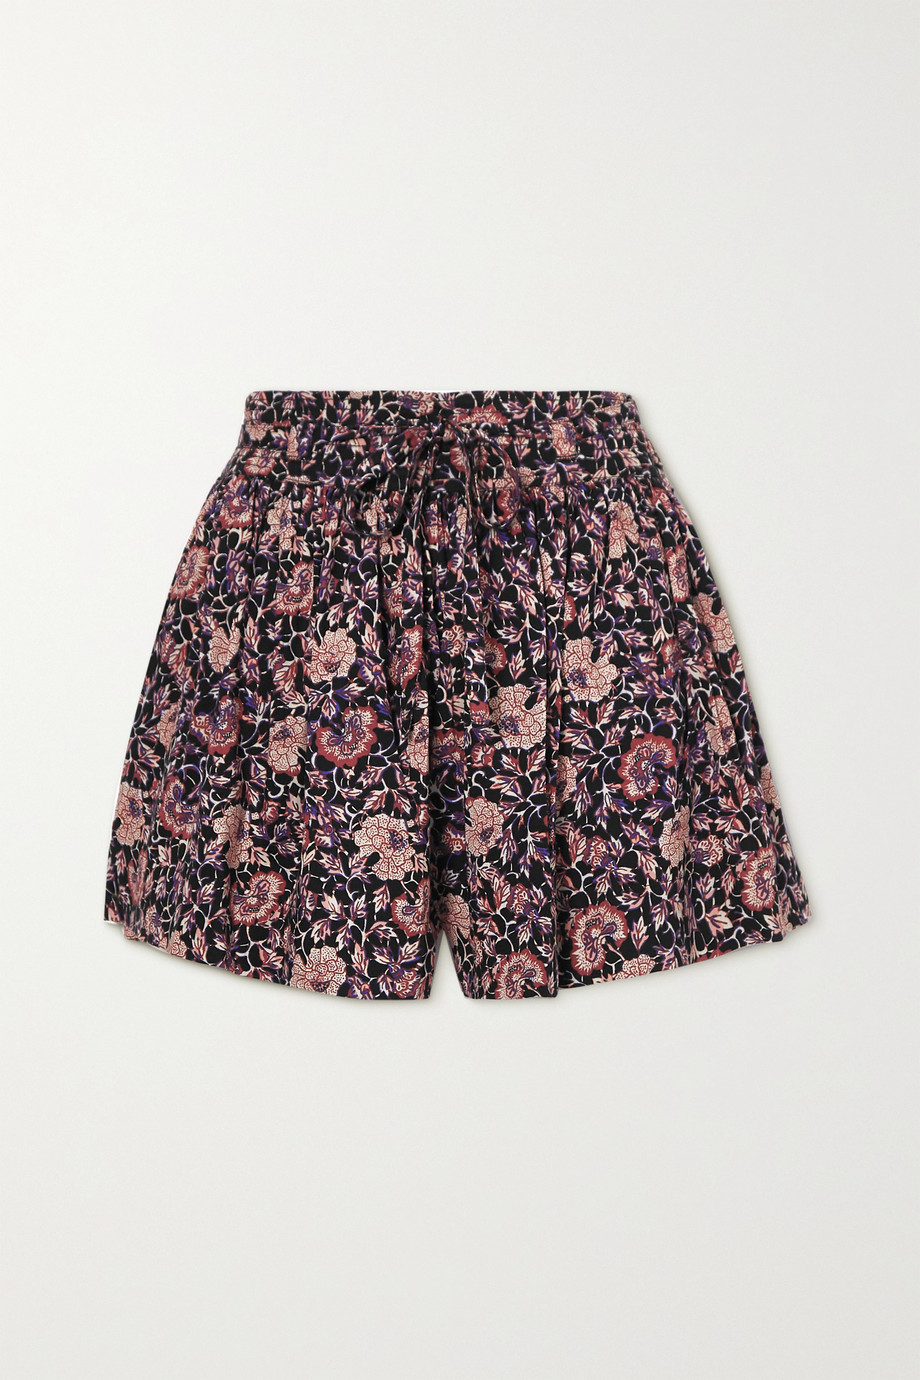 Ulla Johnson Kira gathered floral-print cotton-blend shorts